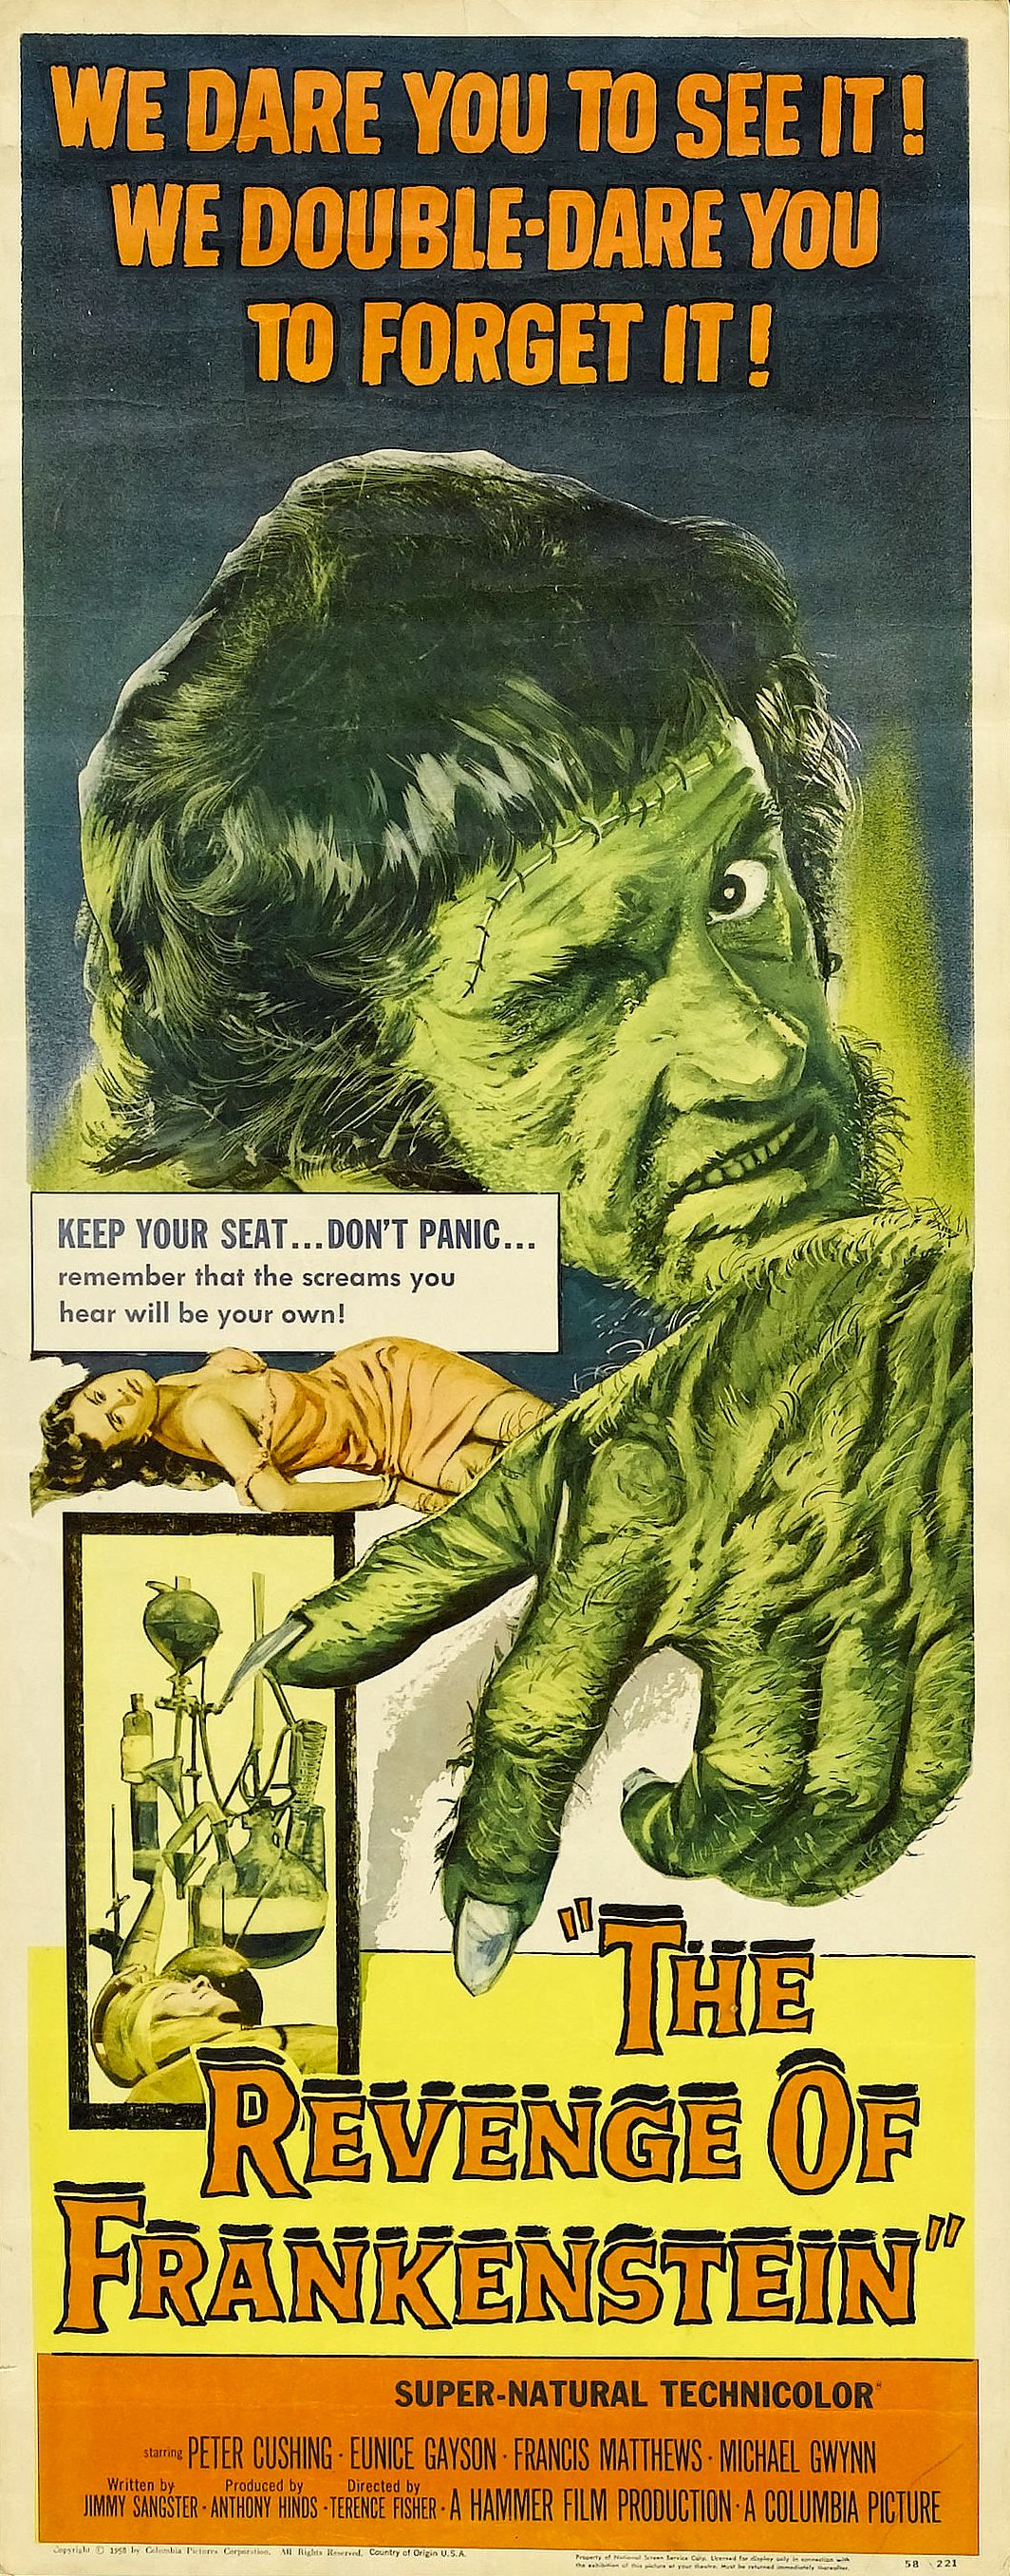 Movie Poster for &quotThe Revenge of Frankenstein""